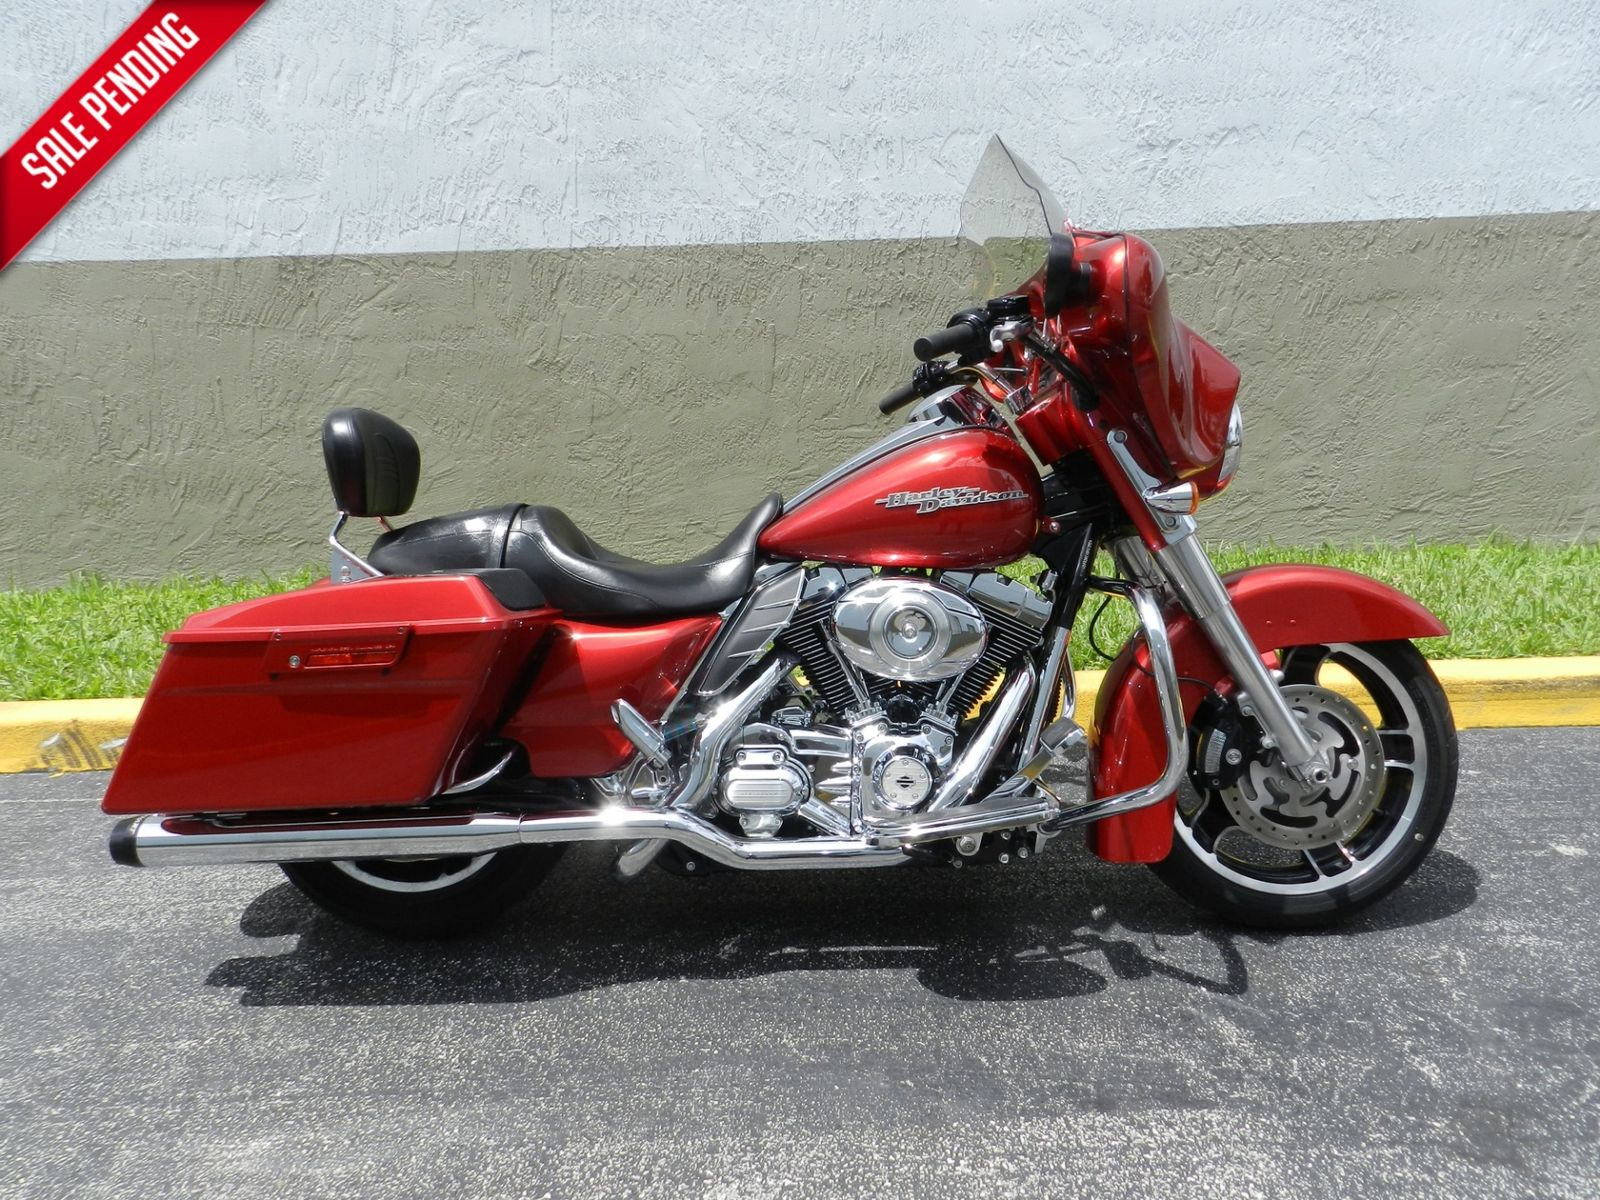 2012 Harley Davidson Street Glide Flhx City Florida Mc Cycles In Hollywood